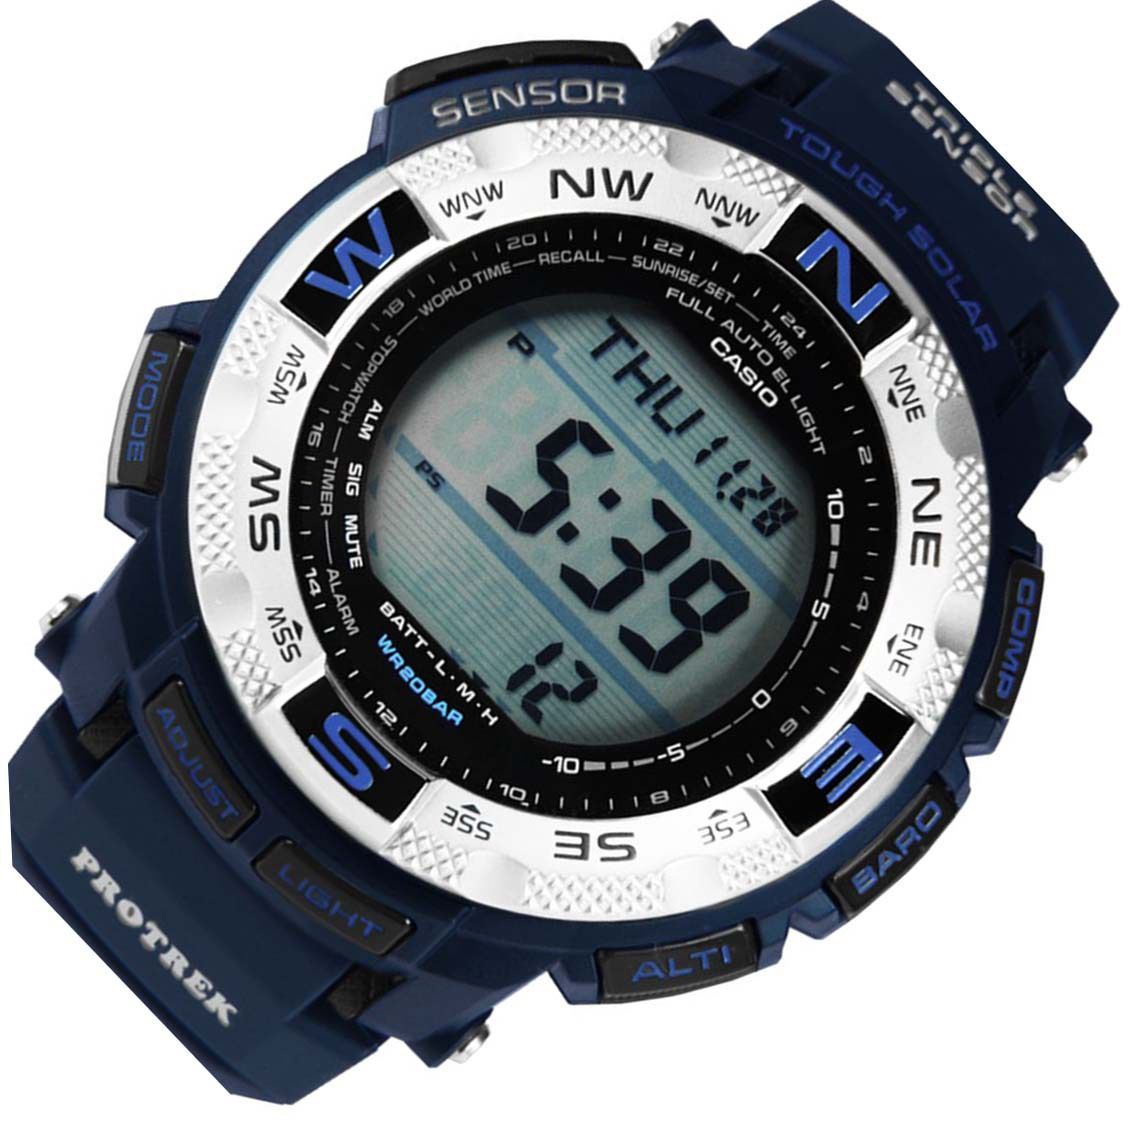 Casio Protrek Prg 260 2dr Casio Protrek Casio Sports Watch